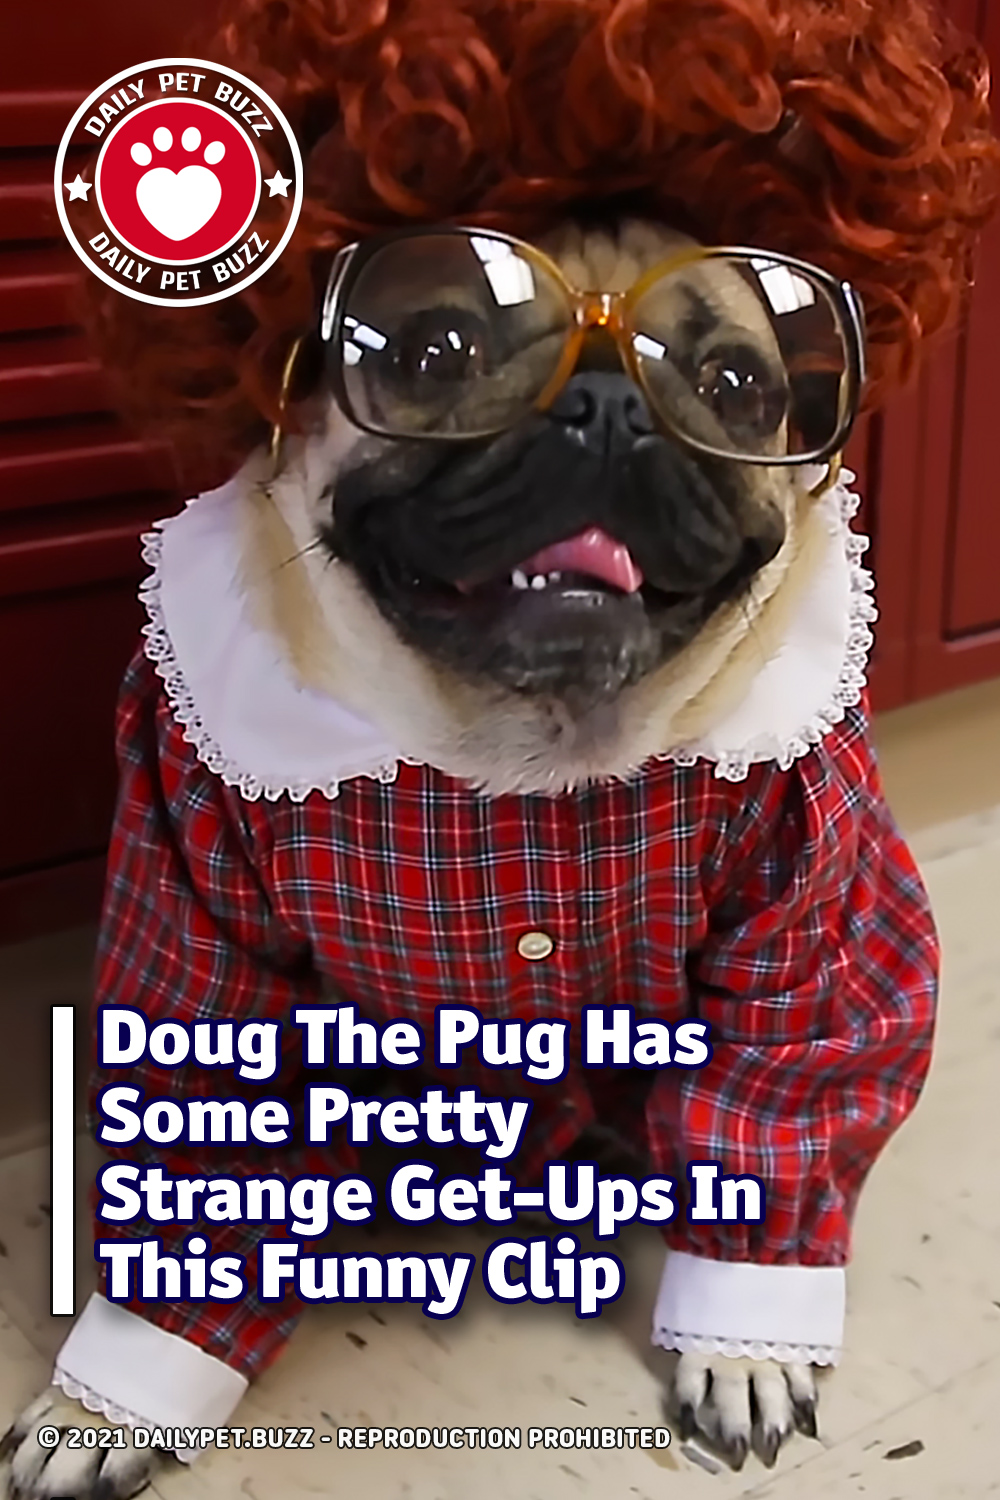 Doug The Pug Has Some Pretty Strange Get-Ups In This Funny Clip